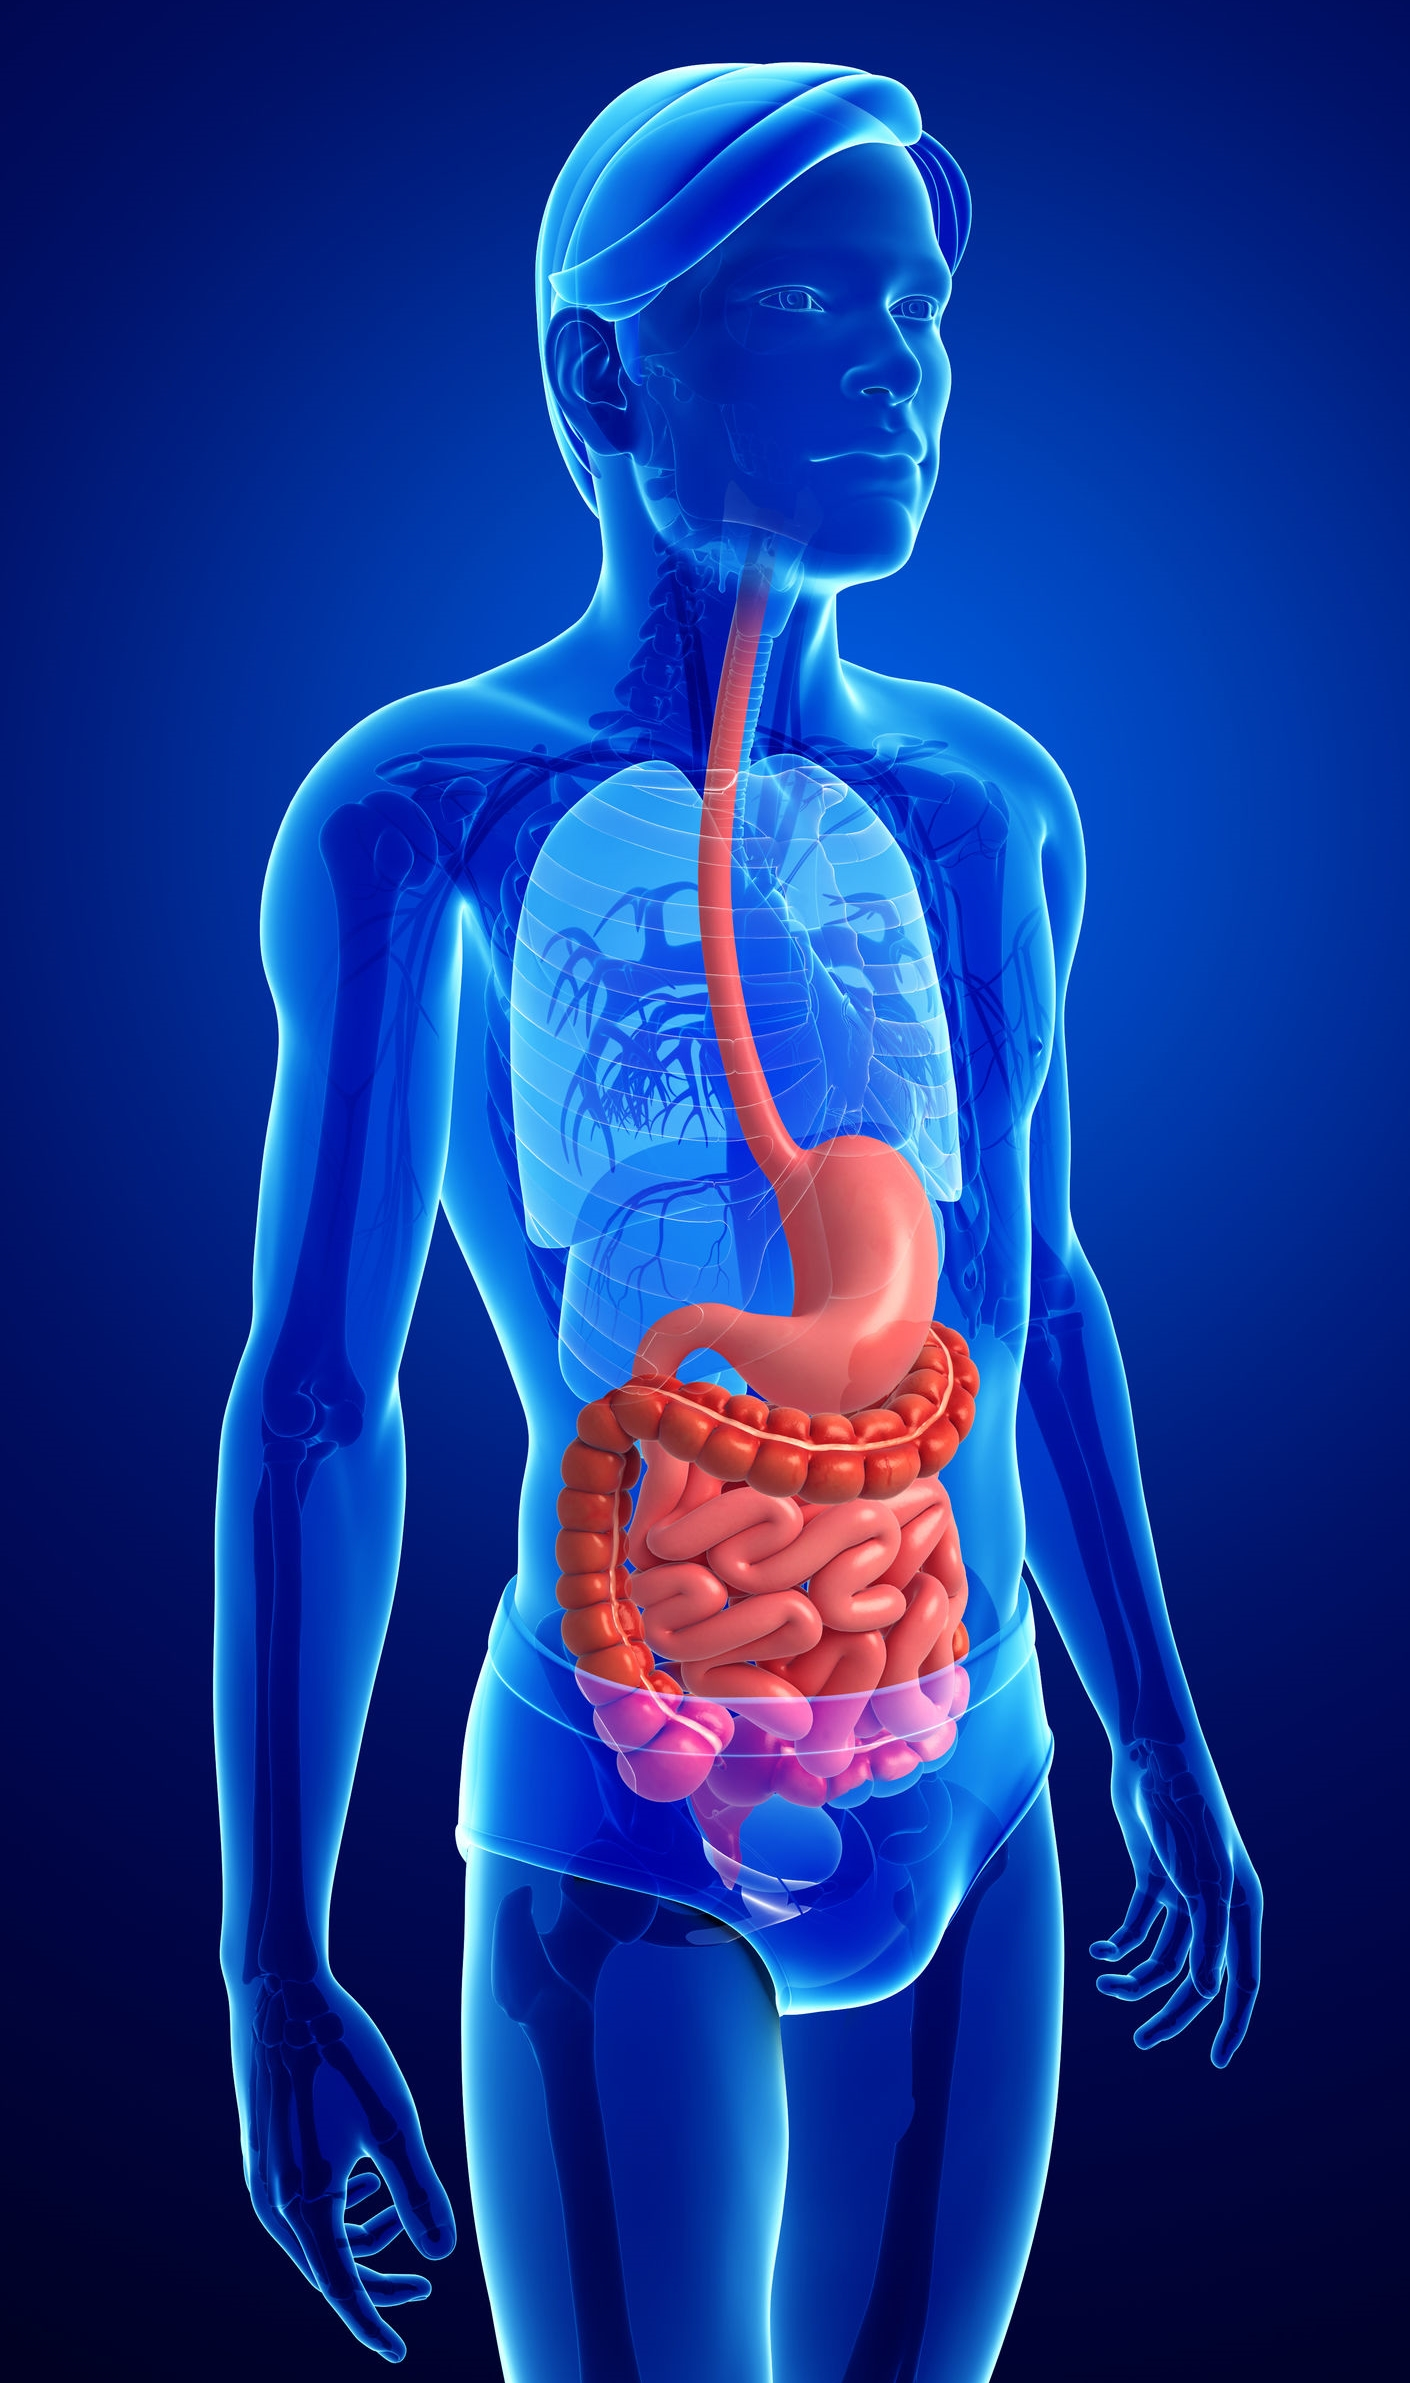 The Digestive System,  Photo: 123rf.com - pixdesign123